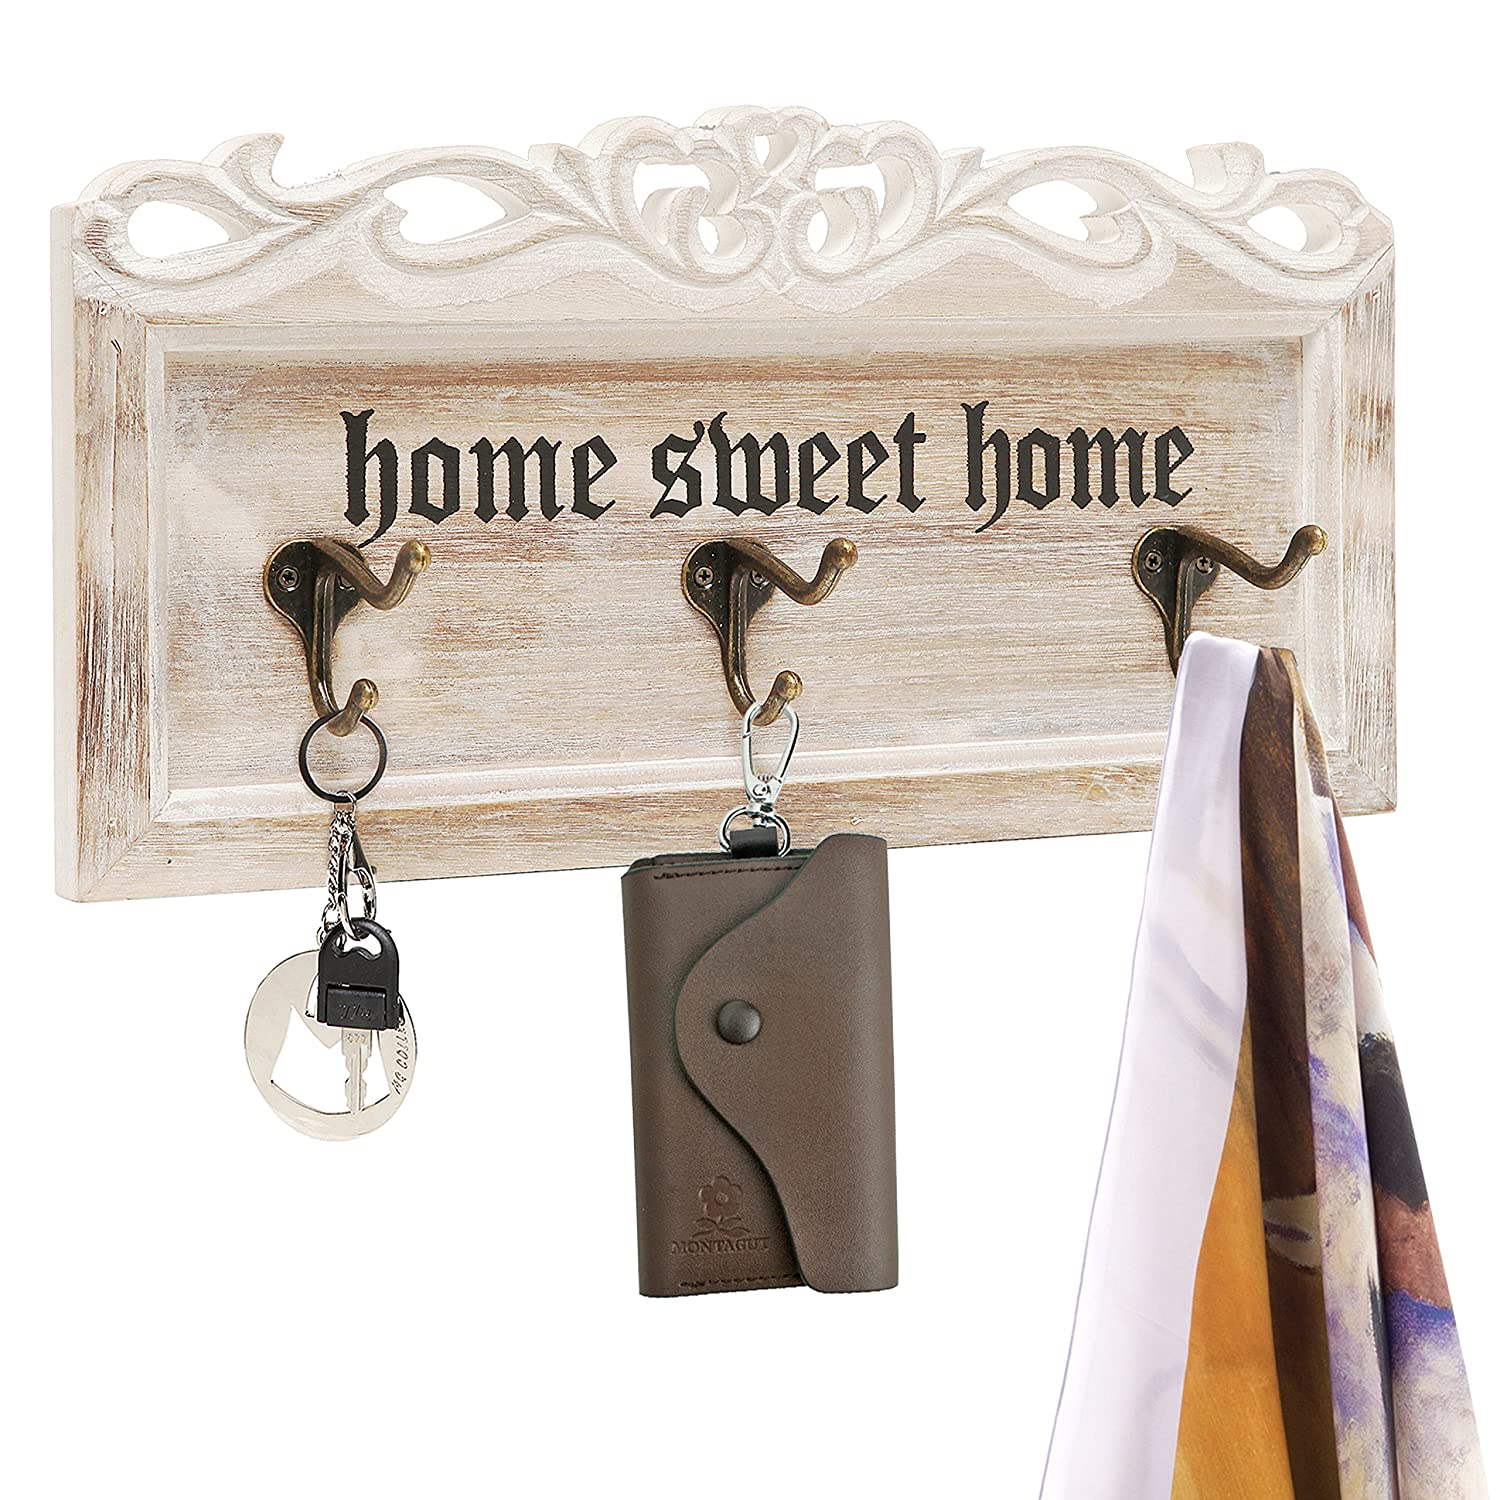 Vintage White Washed Wood Home Sweet Home Decorative Wall Mounted 3 Coat / Key Dual Hooks Organizer Rack MyGift